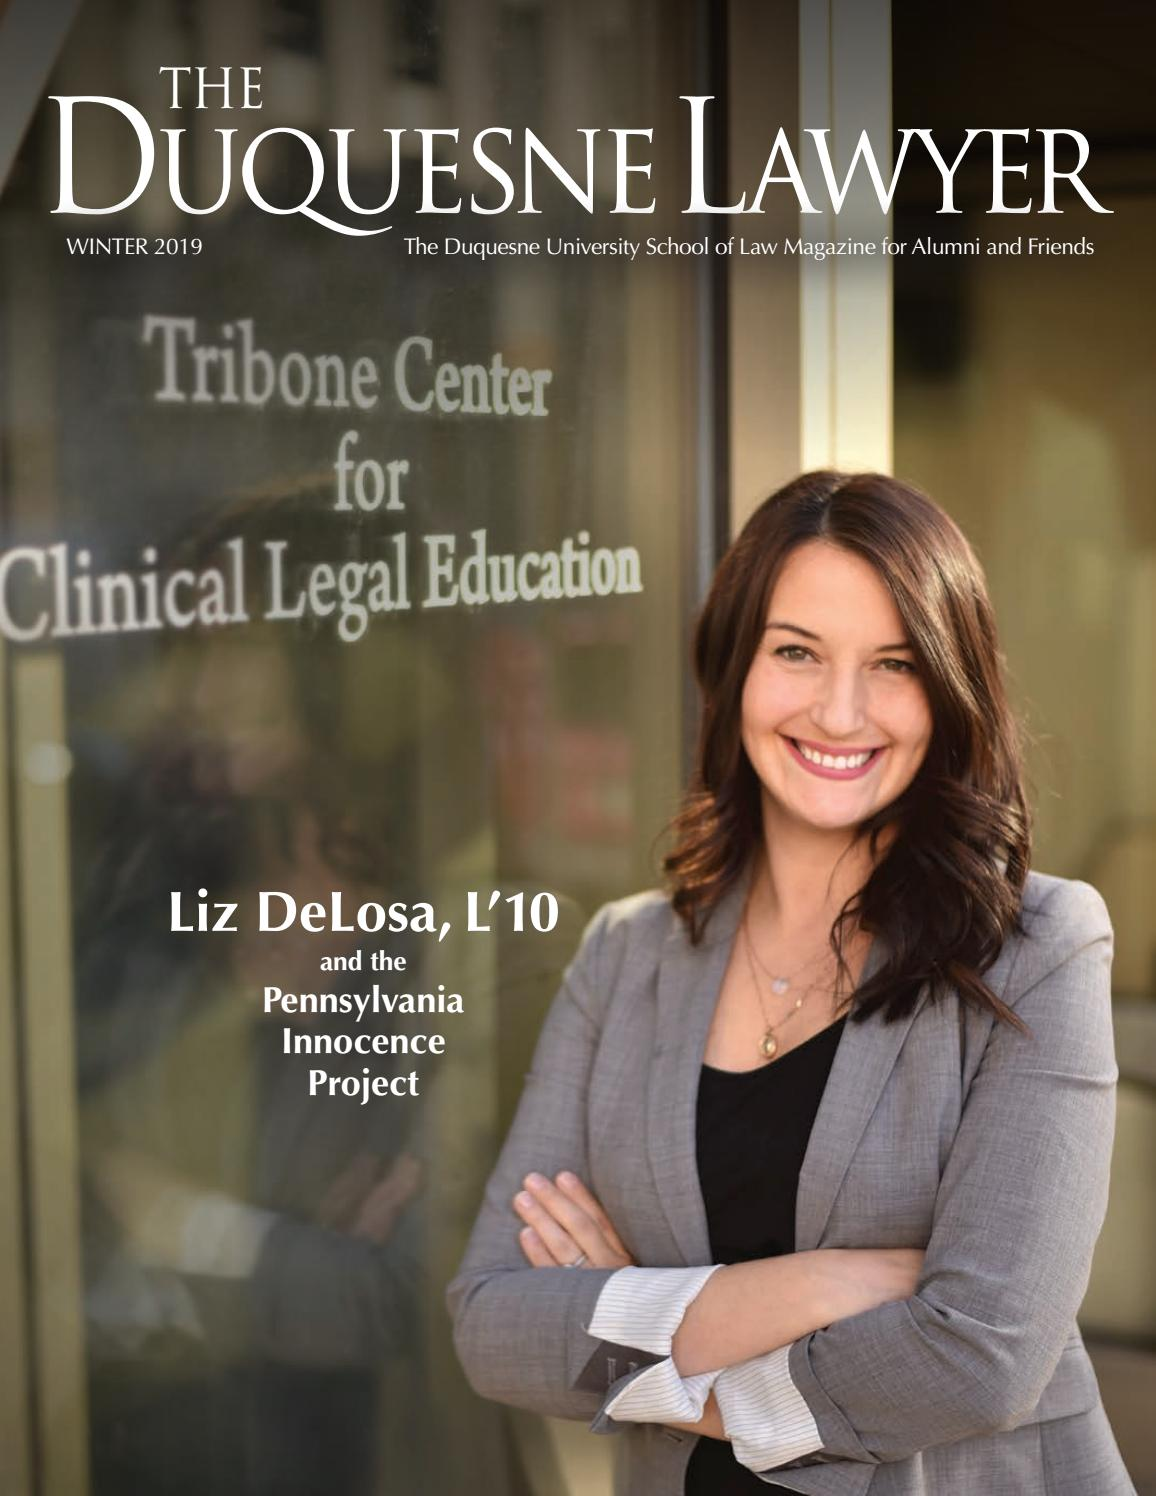 Duquesne Lawyer magazine, fall/winter 2018 by Duquesne University